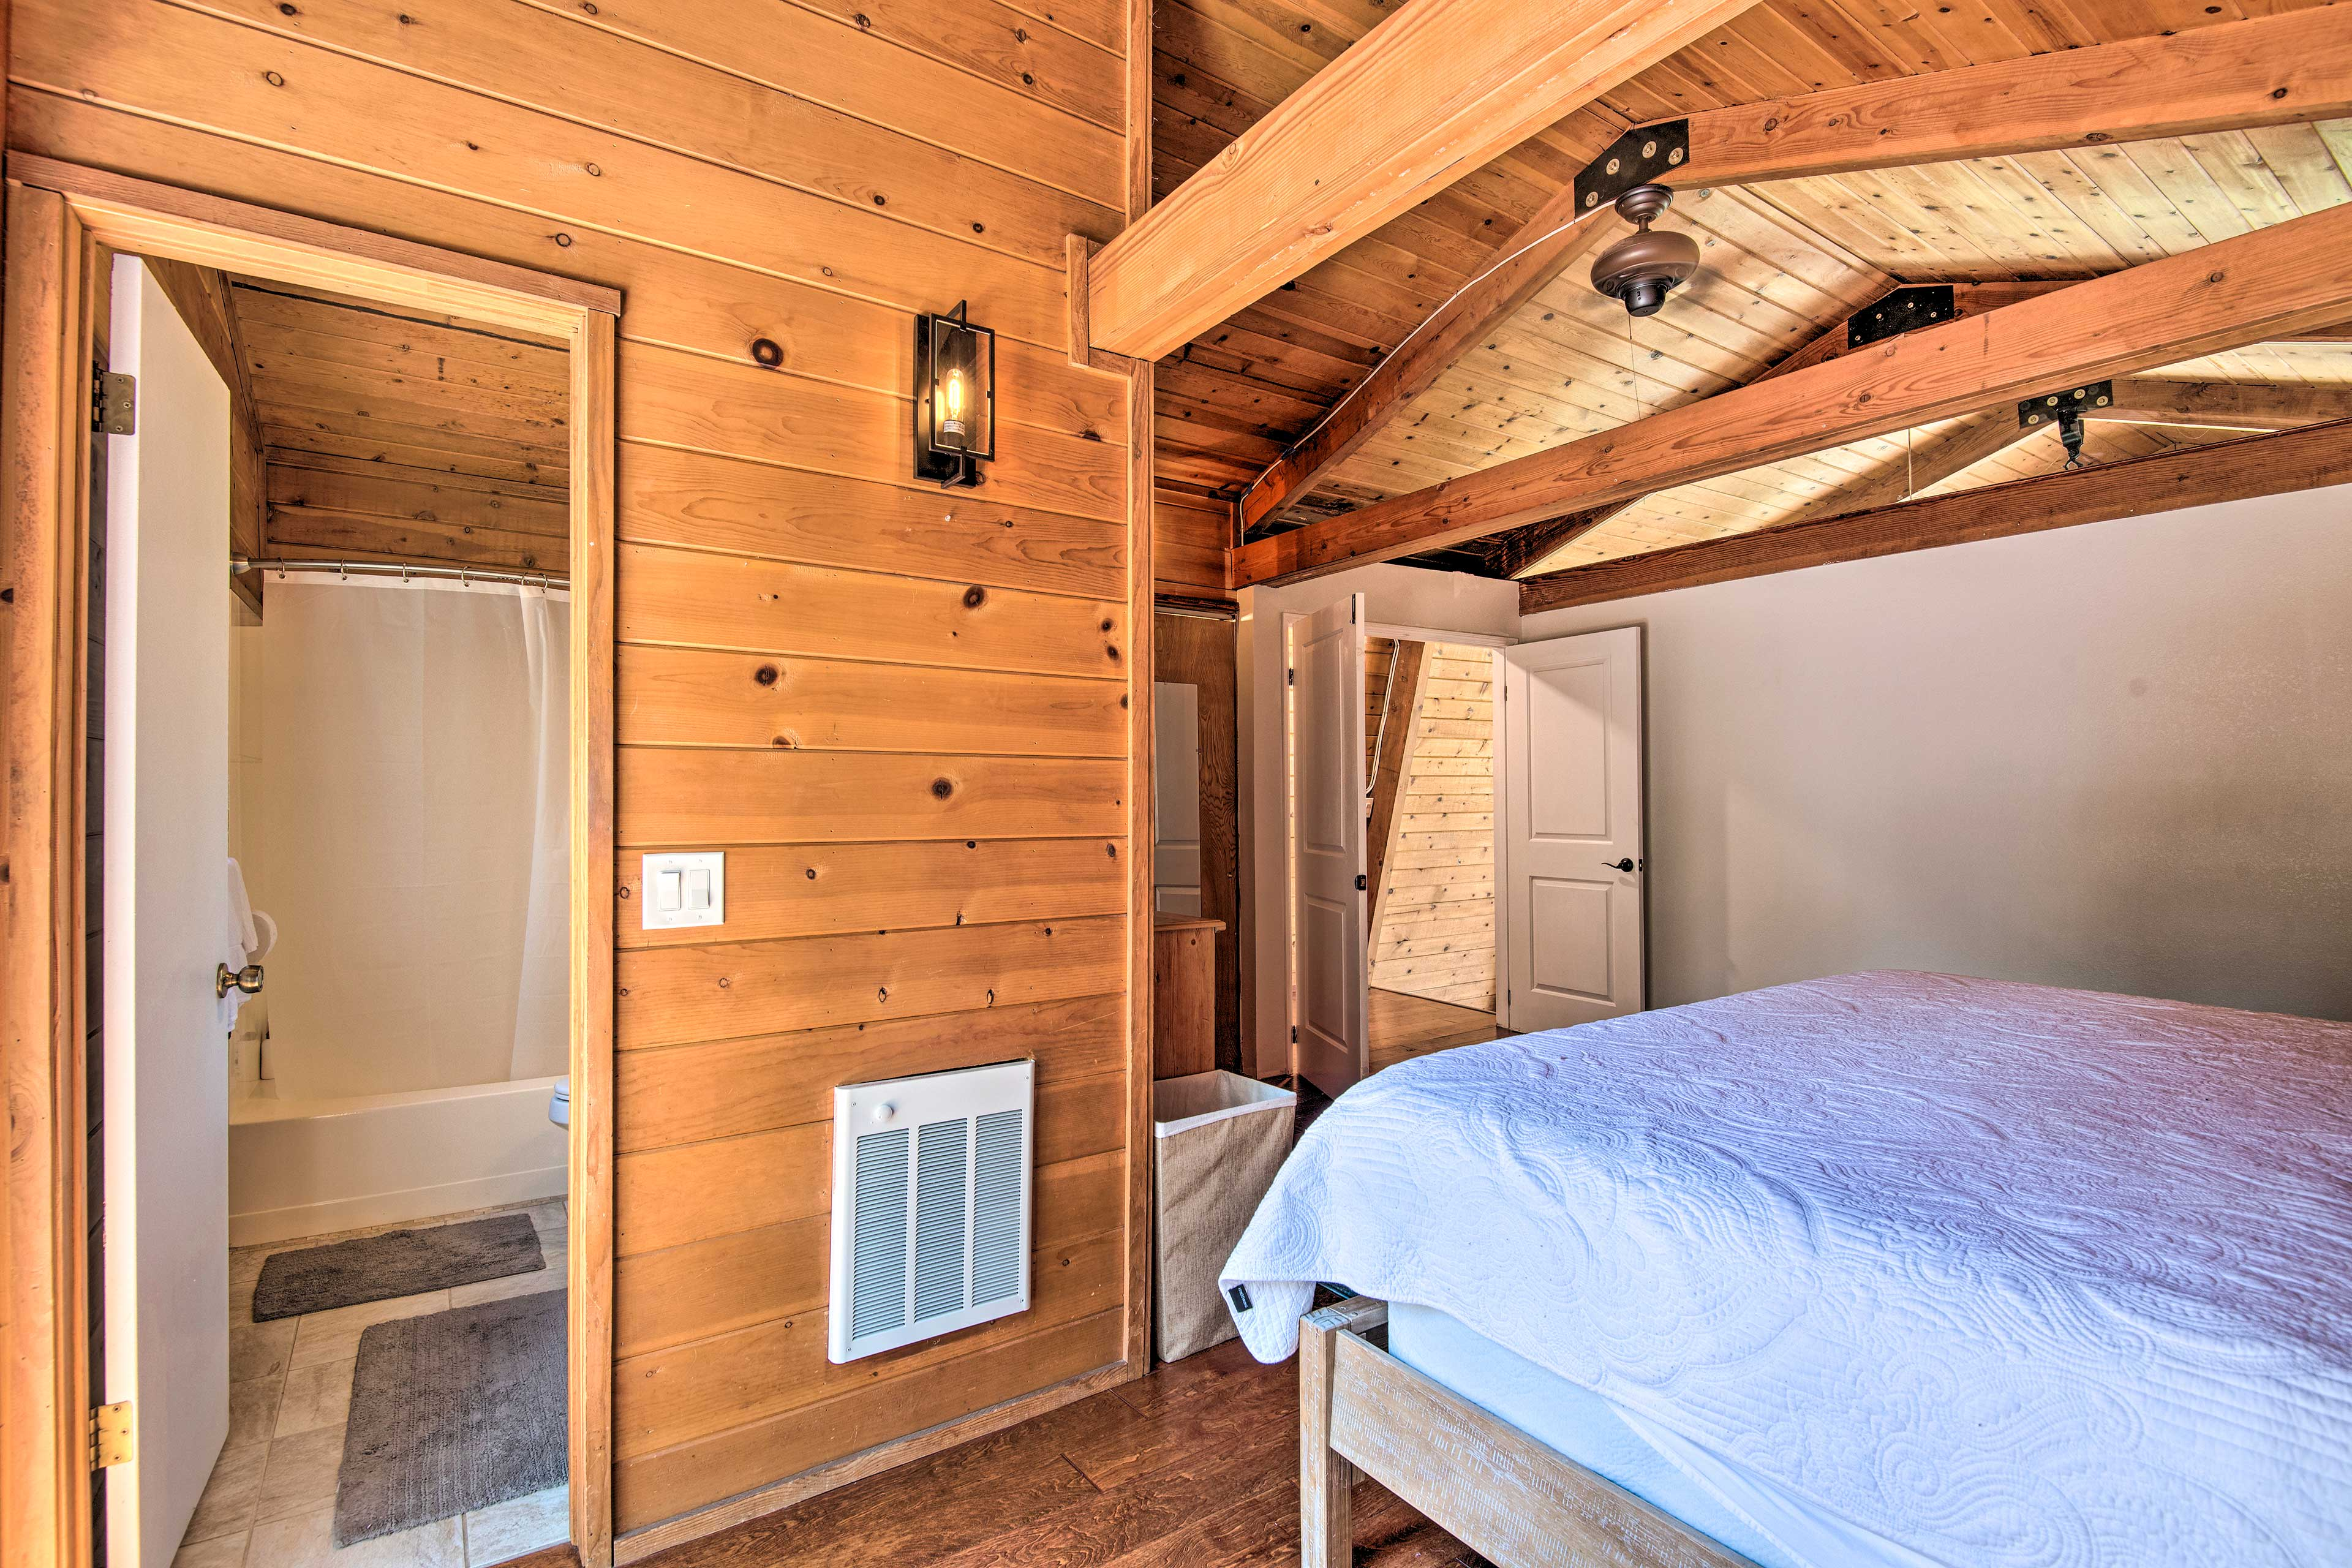 The en-suite bath adds extra convenience to your stay.